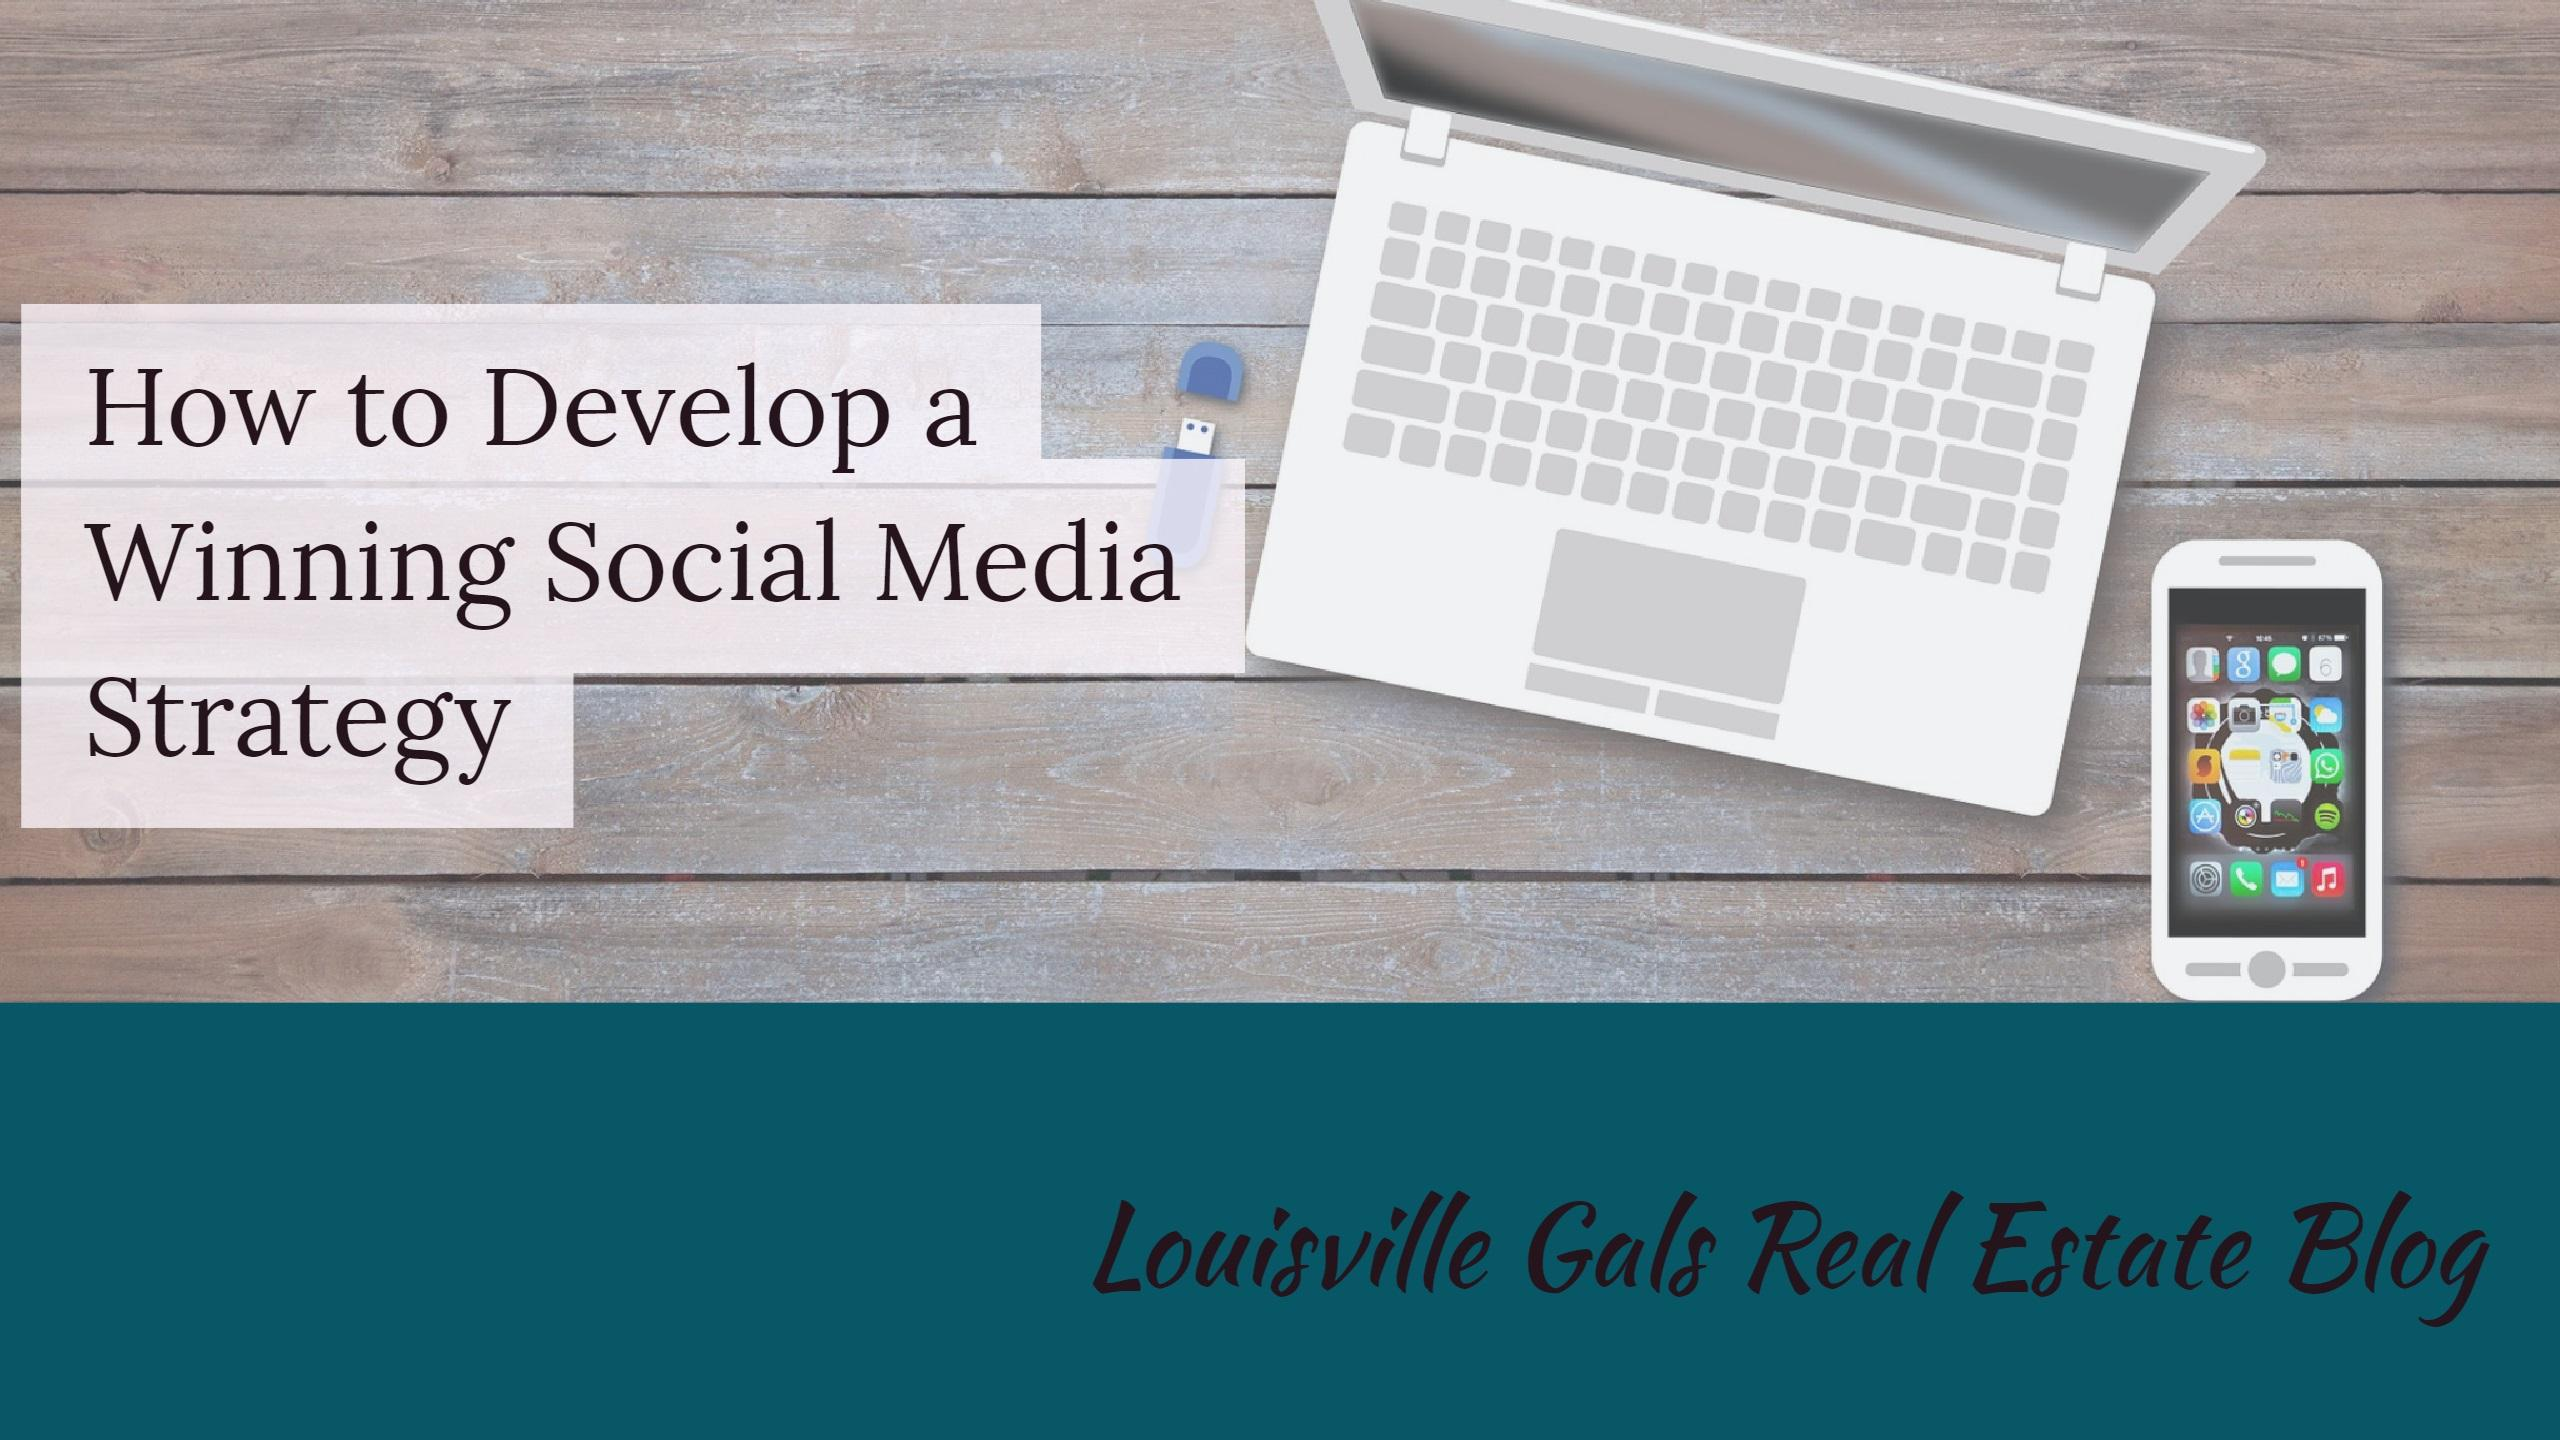 Ways To Develop A Winning Social Media Strategy For Your Real Estate Business